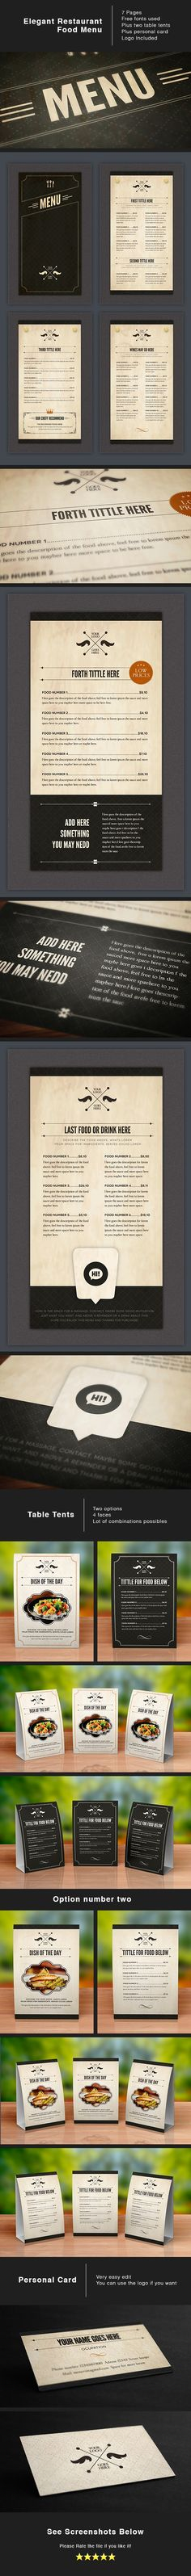 Restaurant Menu Template FoodMenu Template Designs Modern